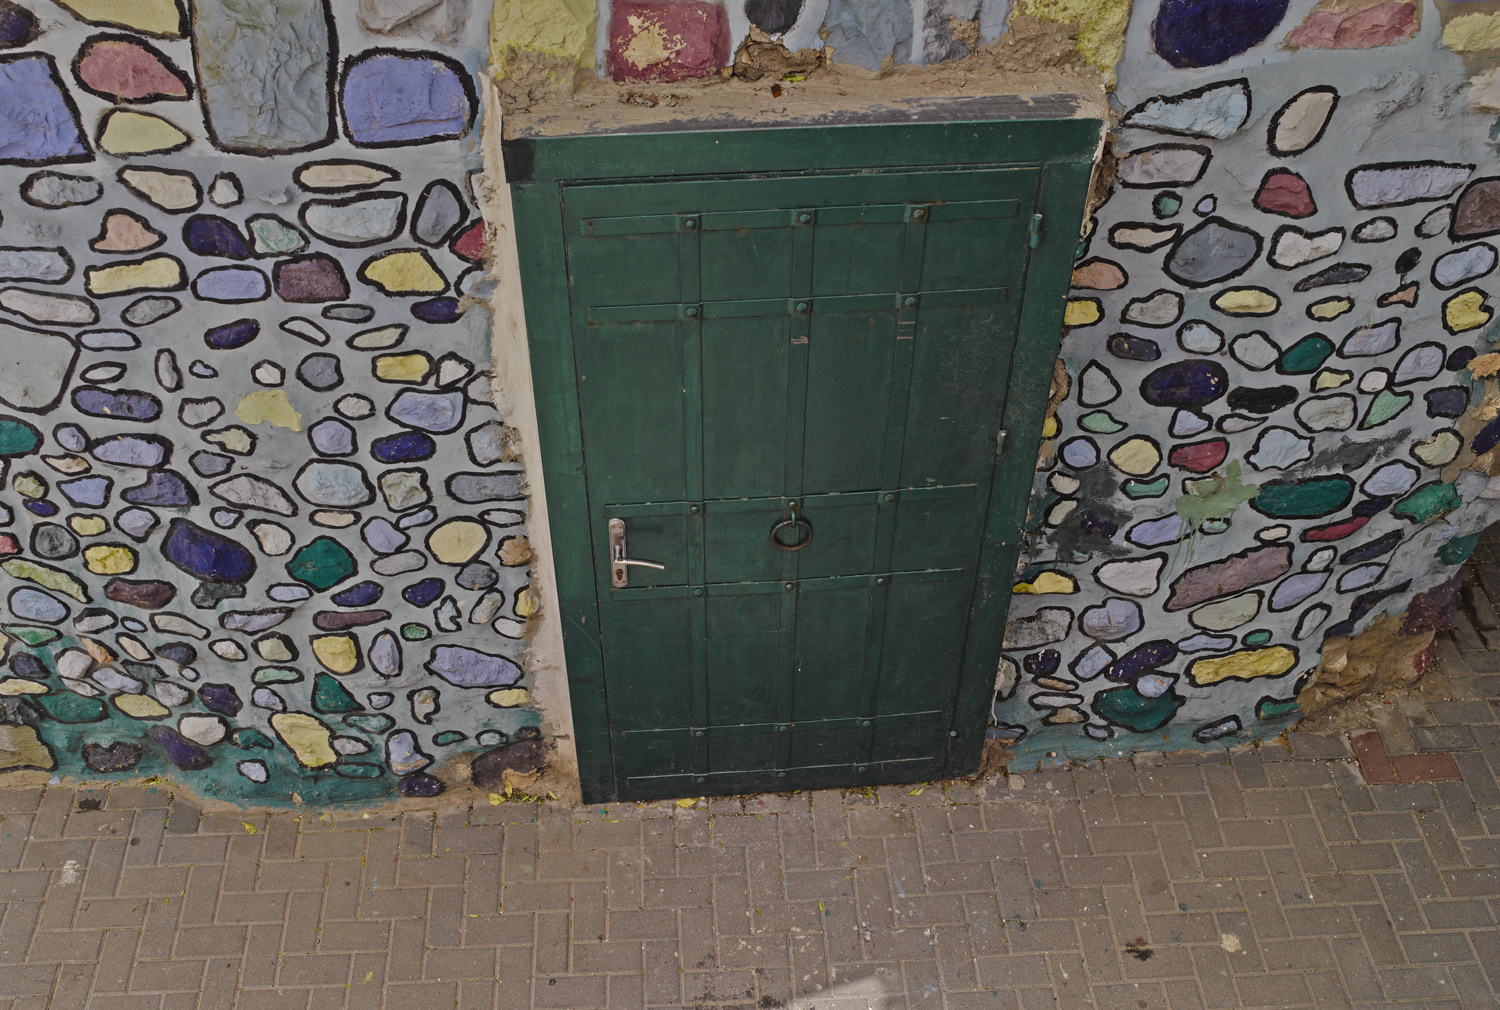 Doorway - Jerusalem, 2014